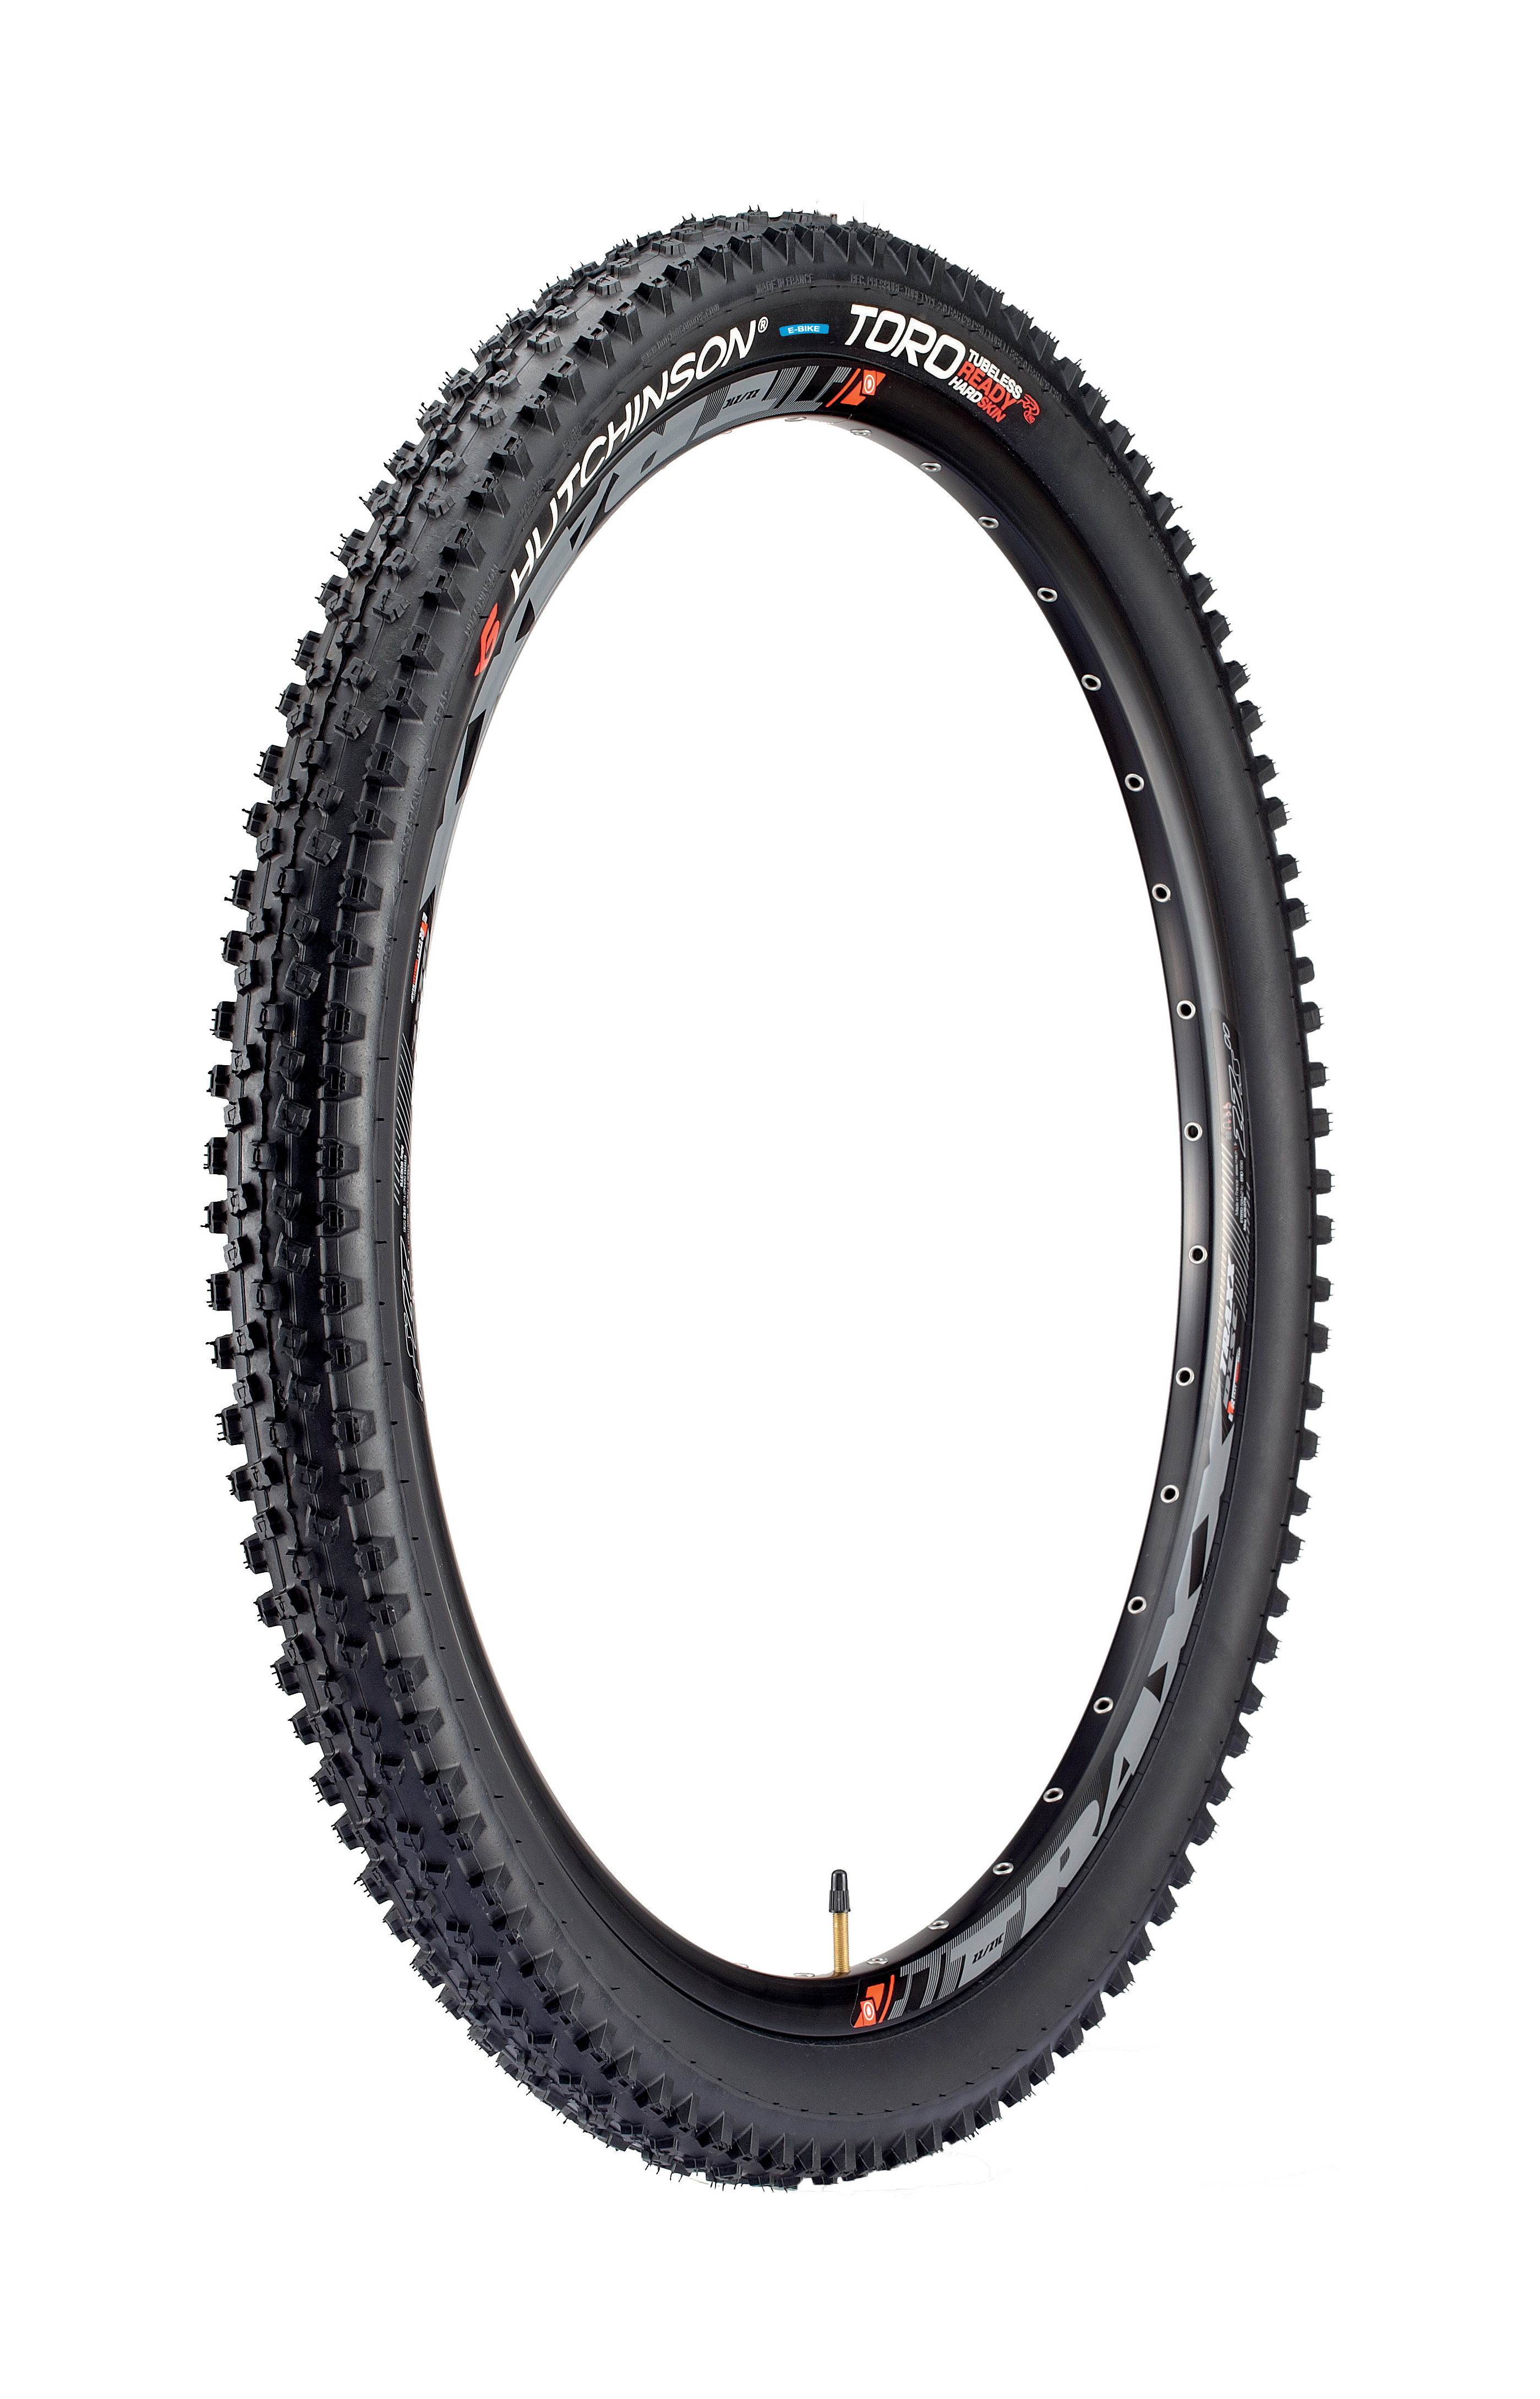 Mountain-Bike-Tyre-Hutchinson-Toro-Mtb-Tire-27-5-X-2-25-Tt thumbnail 1